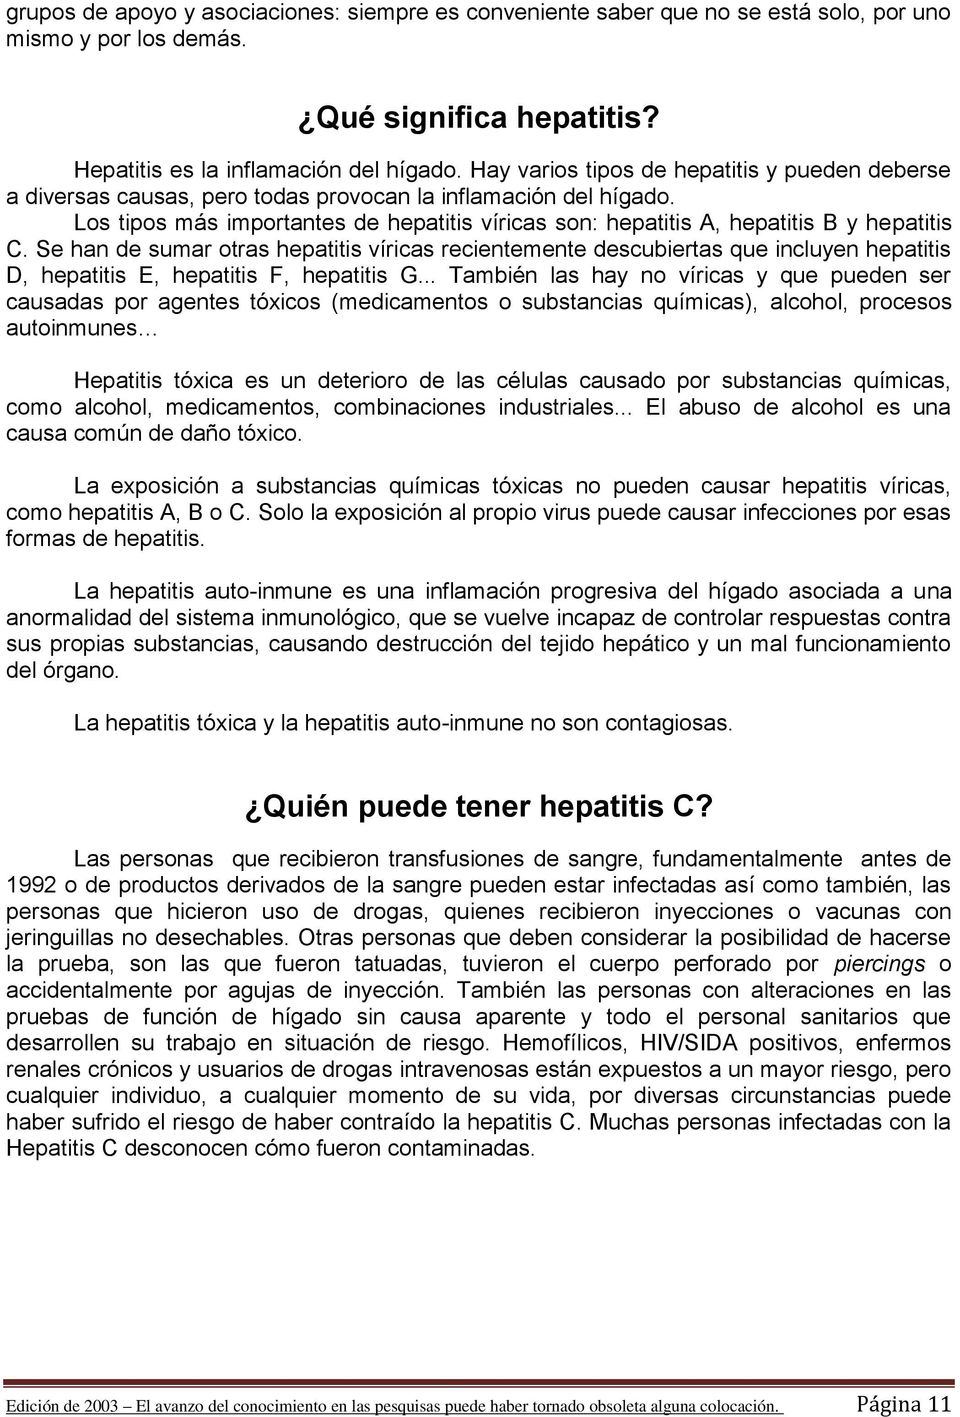 Los tipos más importantes de hepatitis víricas son: hepatitis A, hepatitis B y hepatitis C.